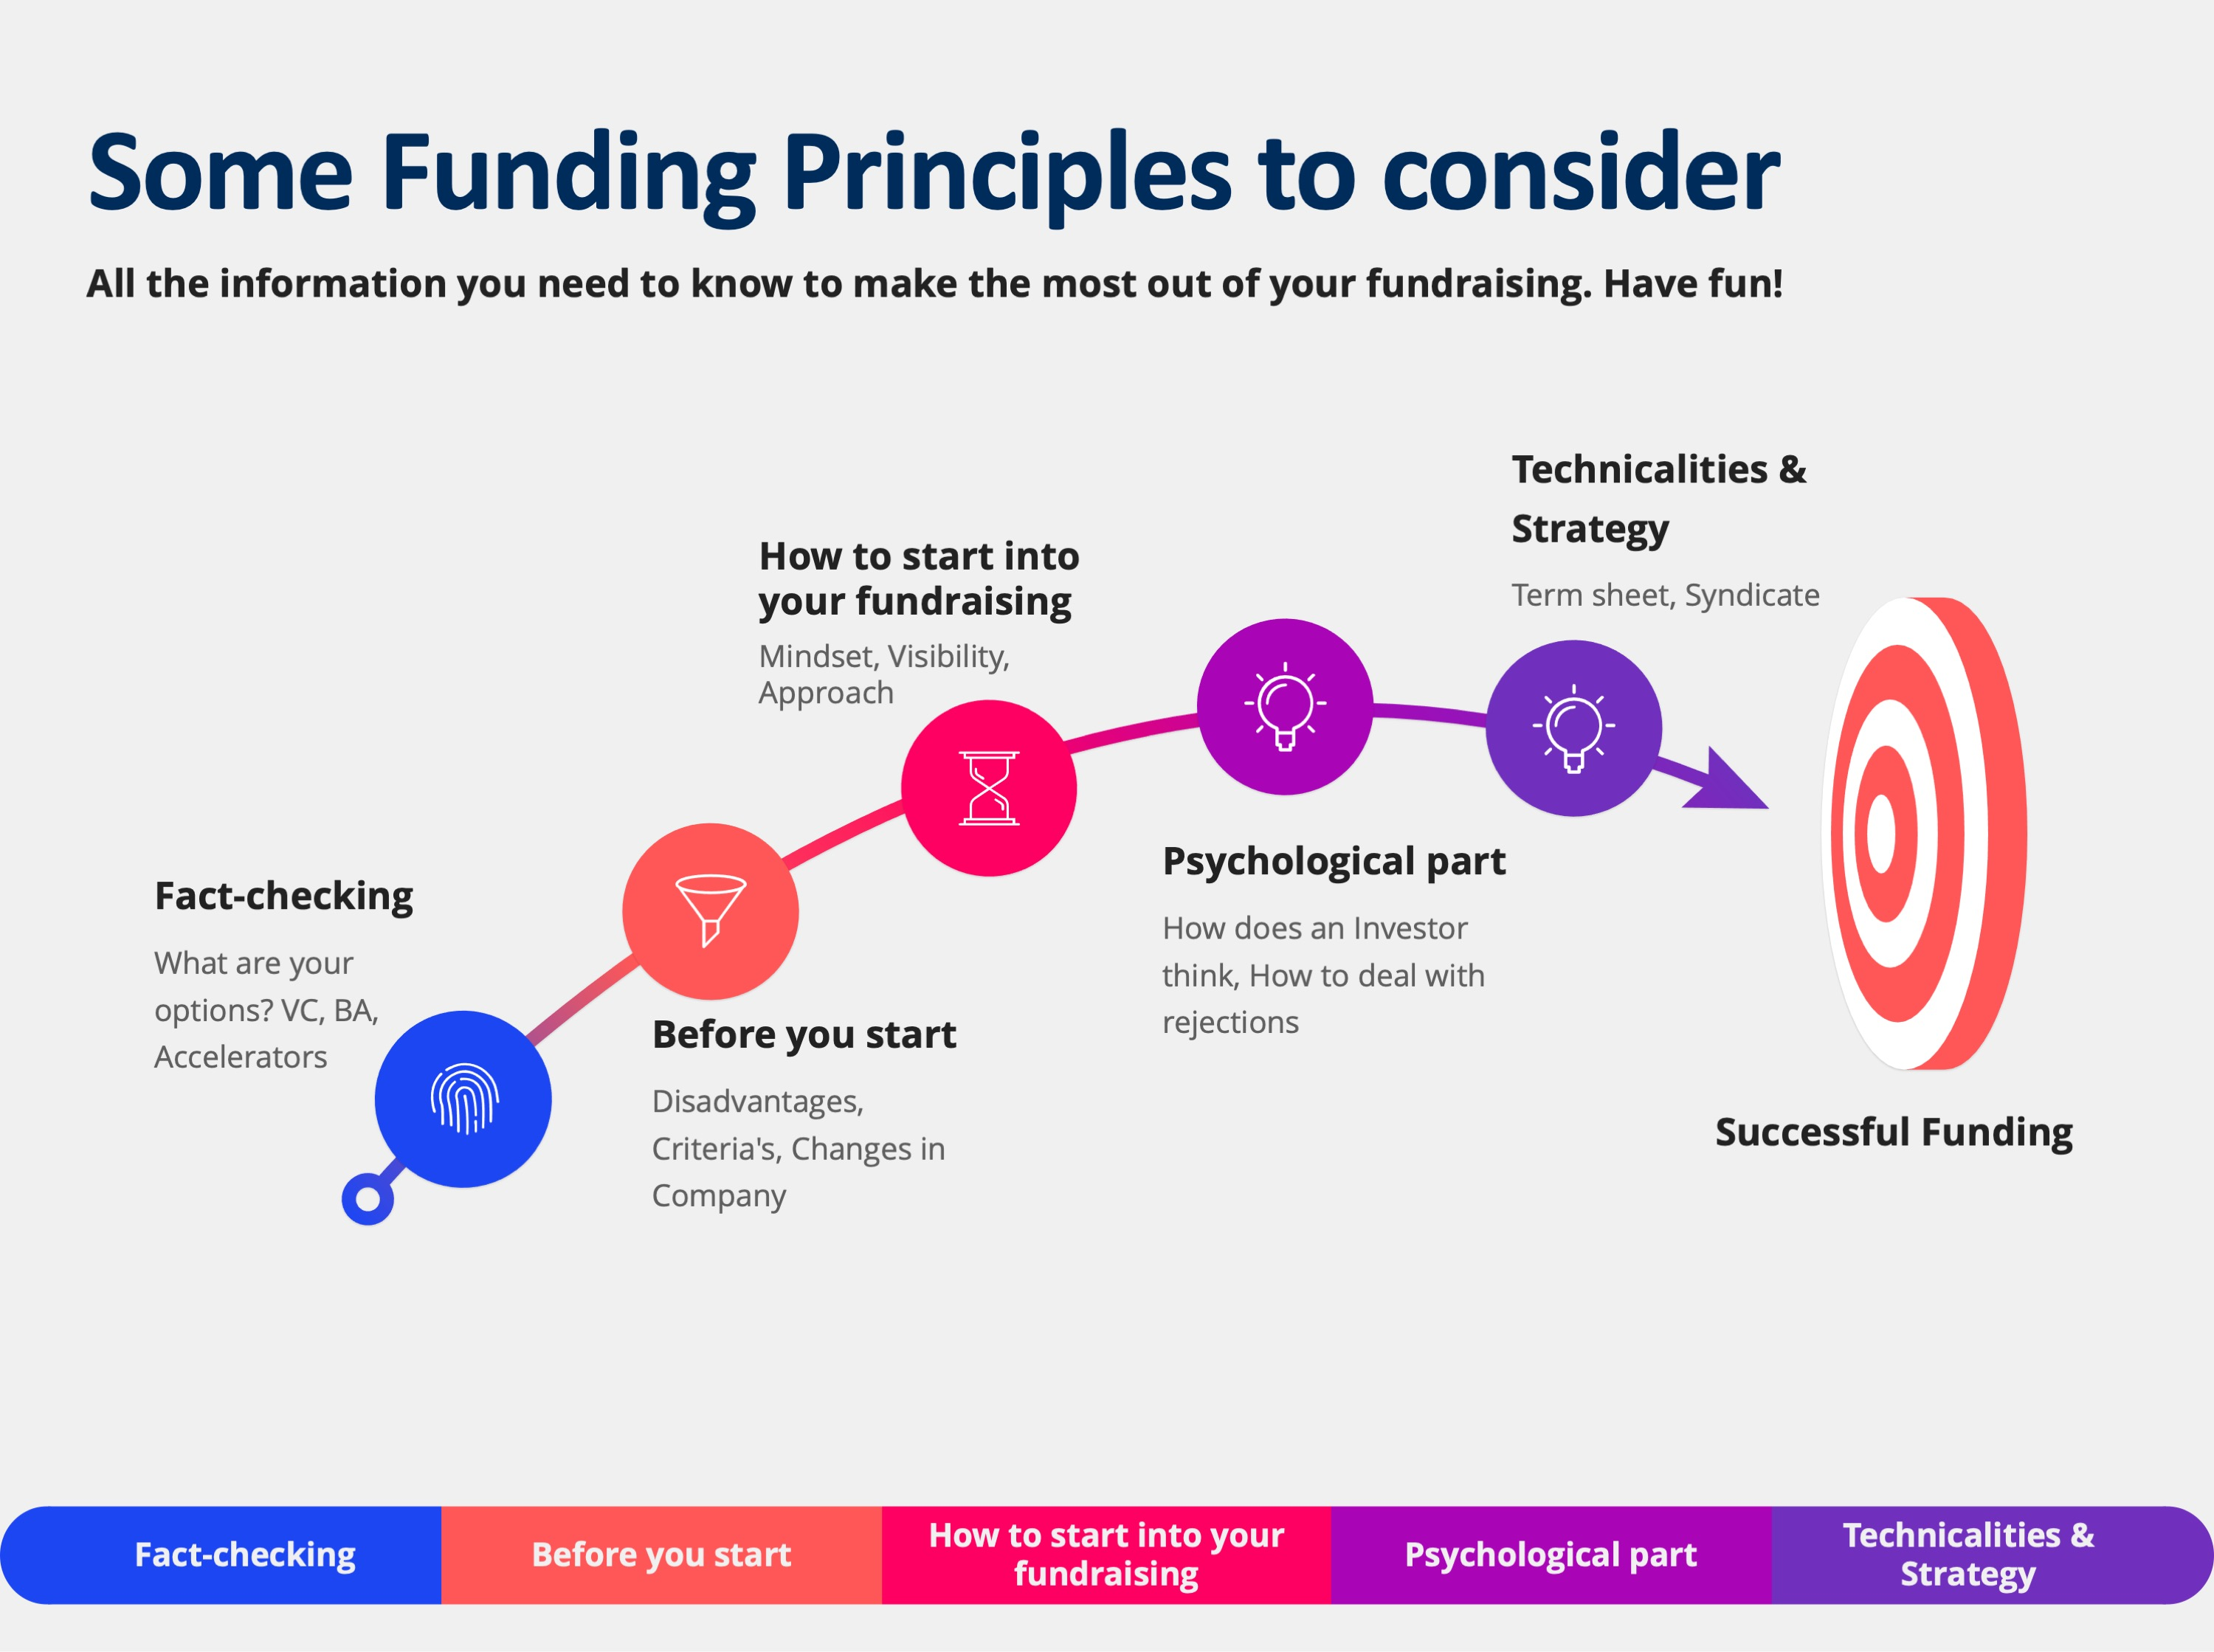 Some Funding Principles to consider